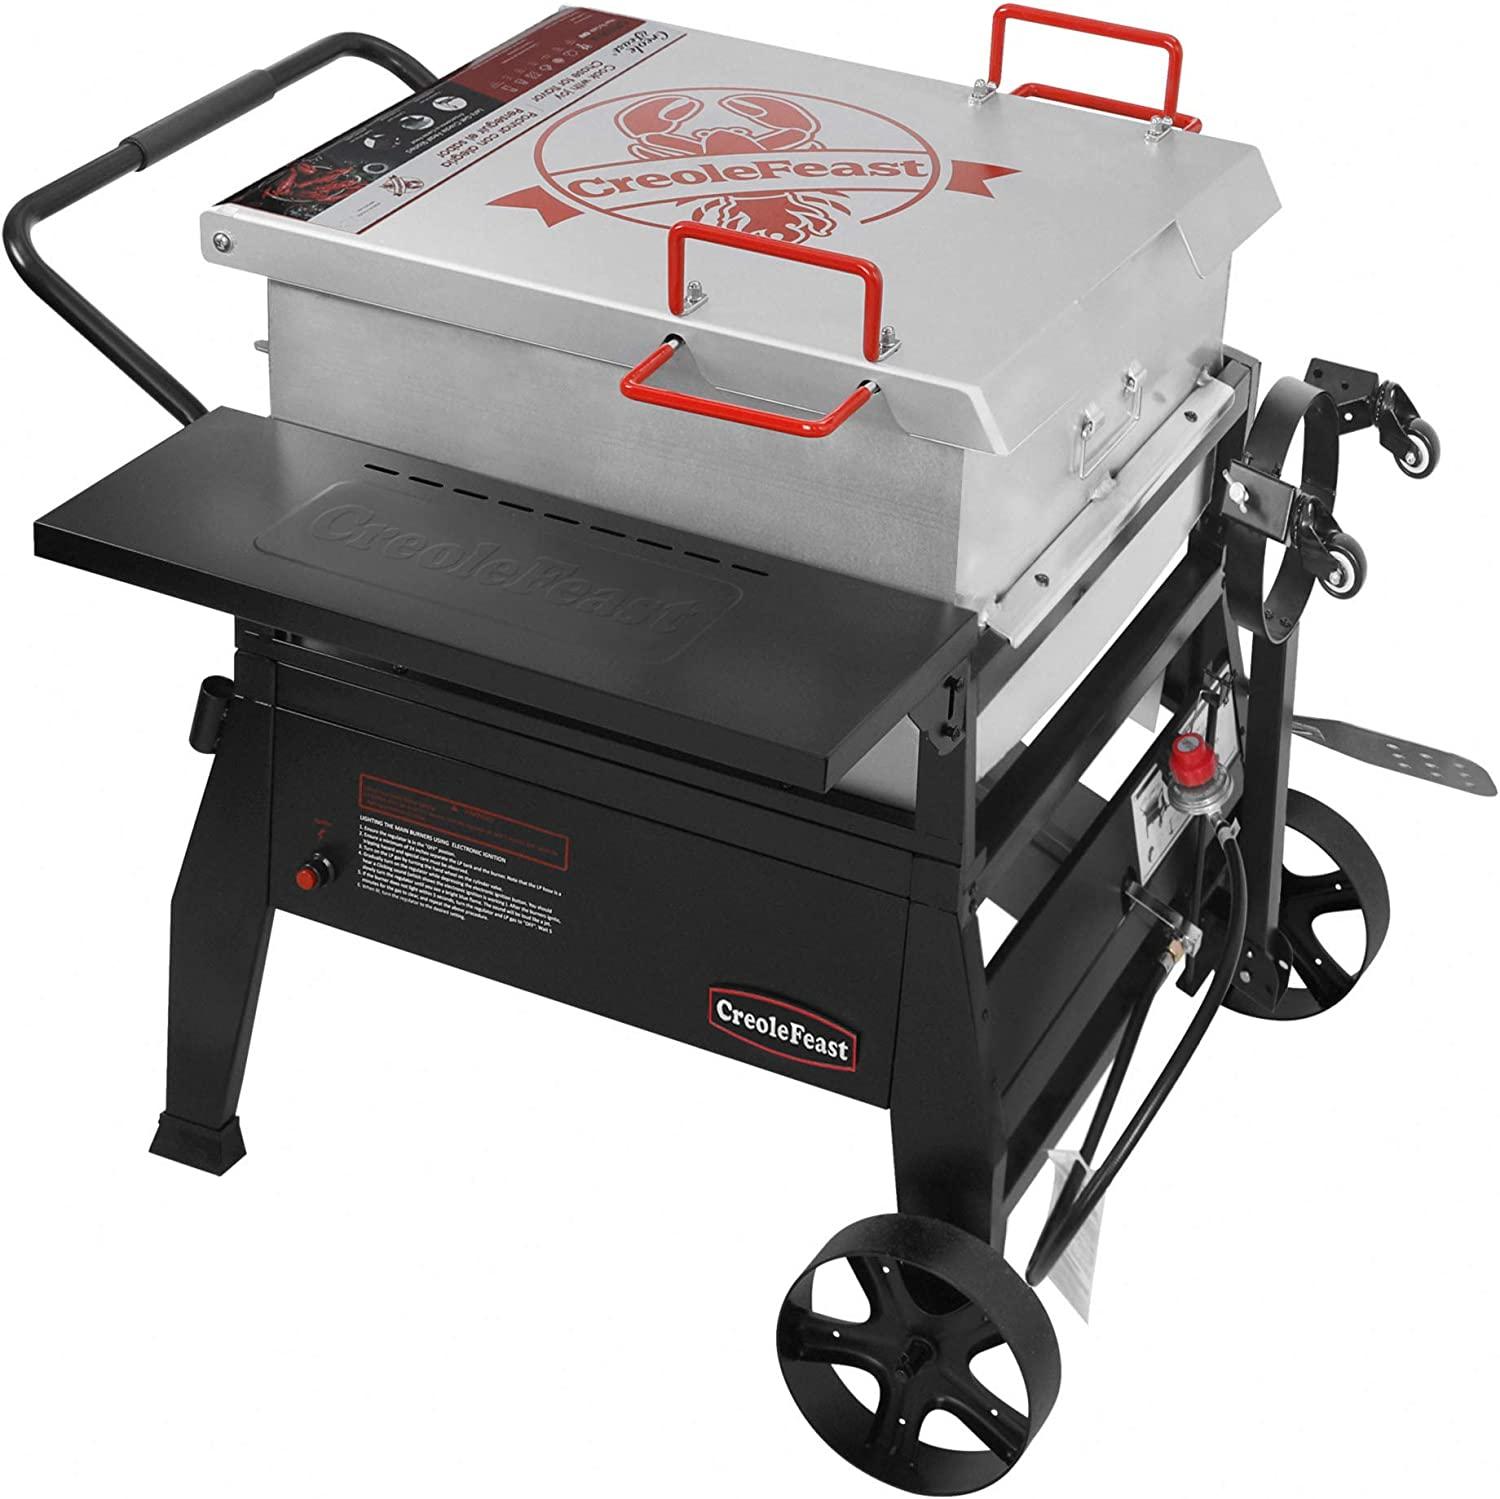 Creole Feast CFB1001A 90 qt. Crawfish Seafood Boiler, Single Sack Outdoor Stove Propane Gas Cooker with 10-psi Regulator and Folding Tank Mounting Bracket, for Crawfish Season